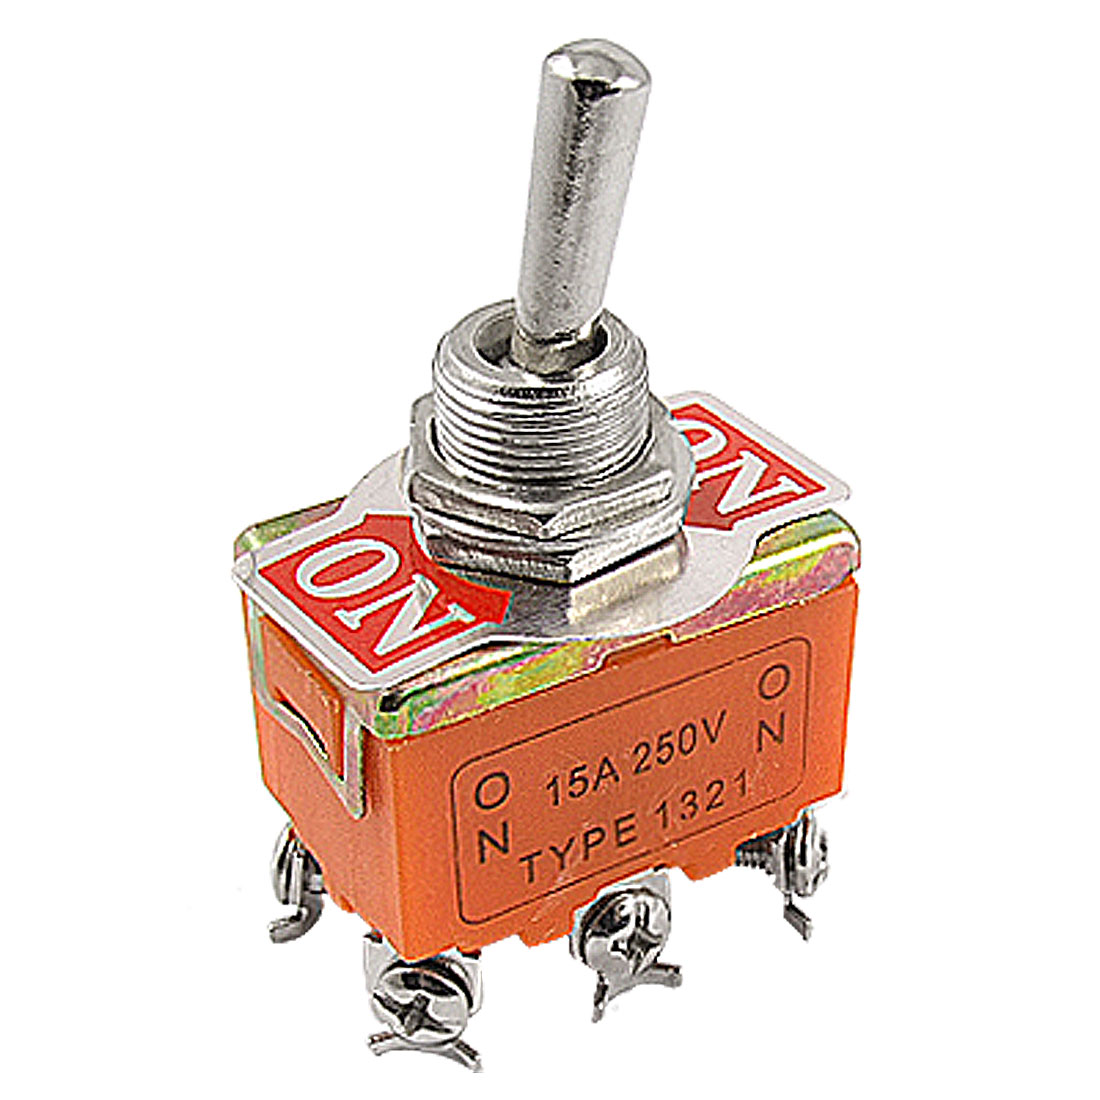 AC 15A 250V On/On 2 Position DPDT 6 Terminals Toggle Switch Orange